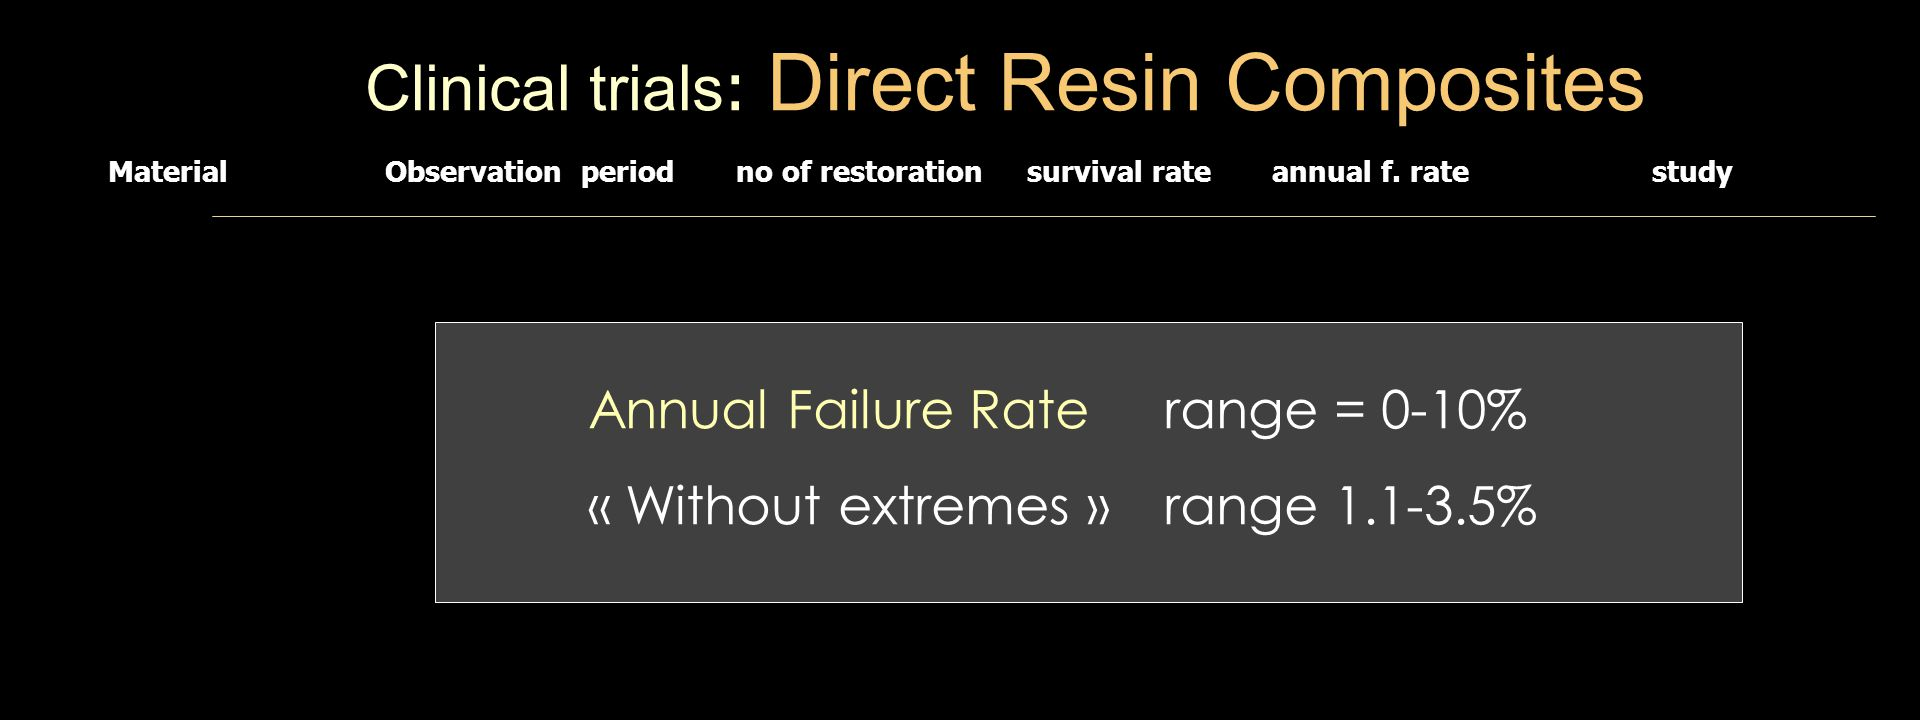 Clinical trials : Direct Resin Composites Material Observation period no of restoration survival rate annual f.